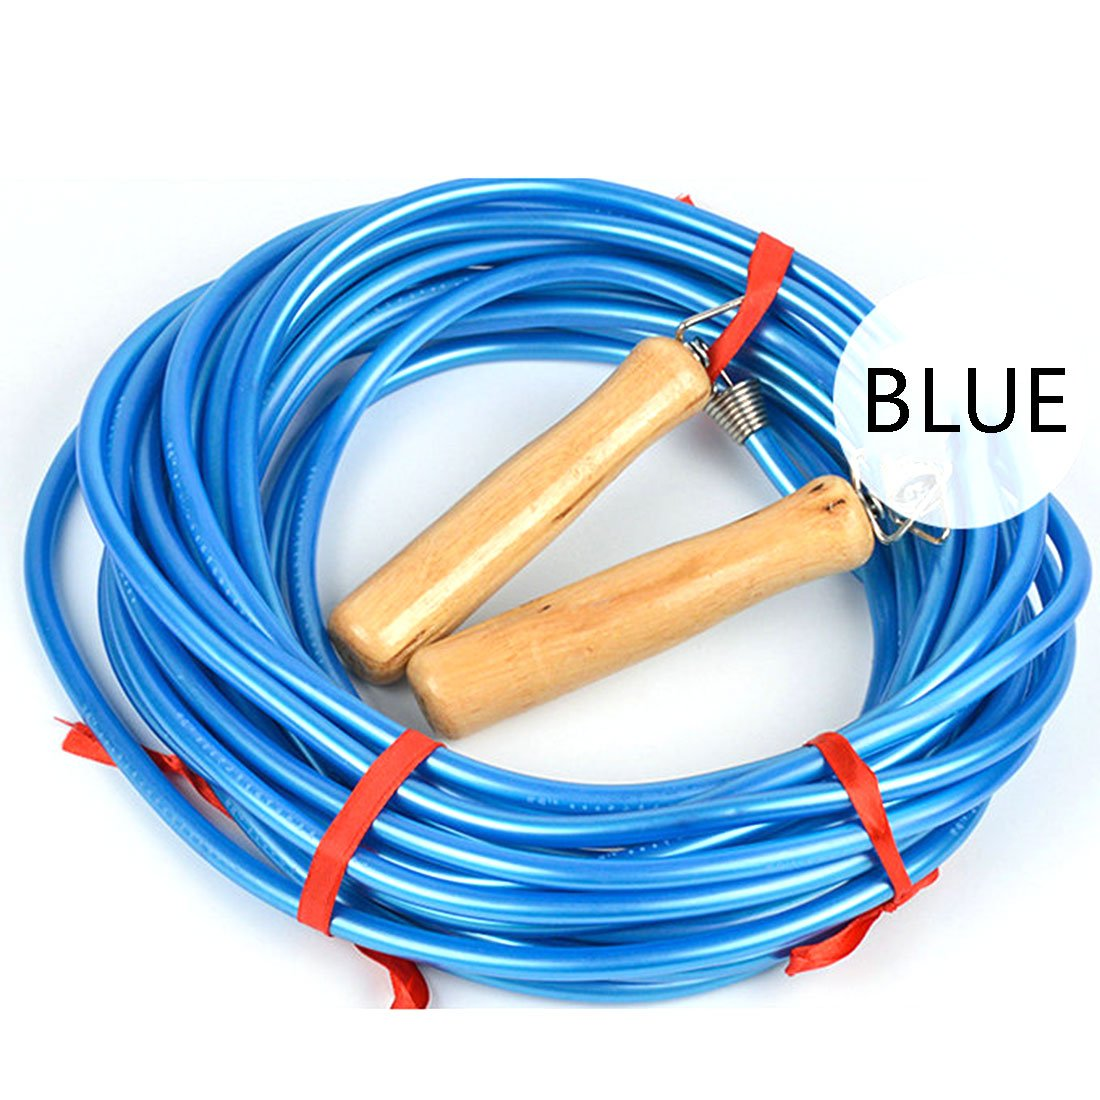 Jump Rope Workout, Petforu 16-Feet PVC Skipping Rope Fitness Exercise for Multiplayer (BLUE)